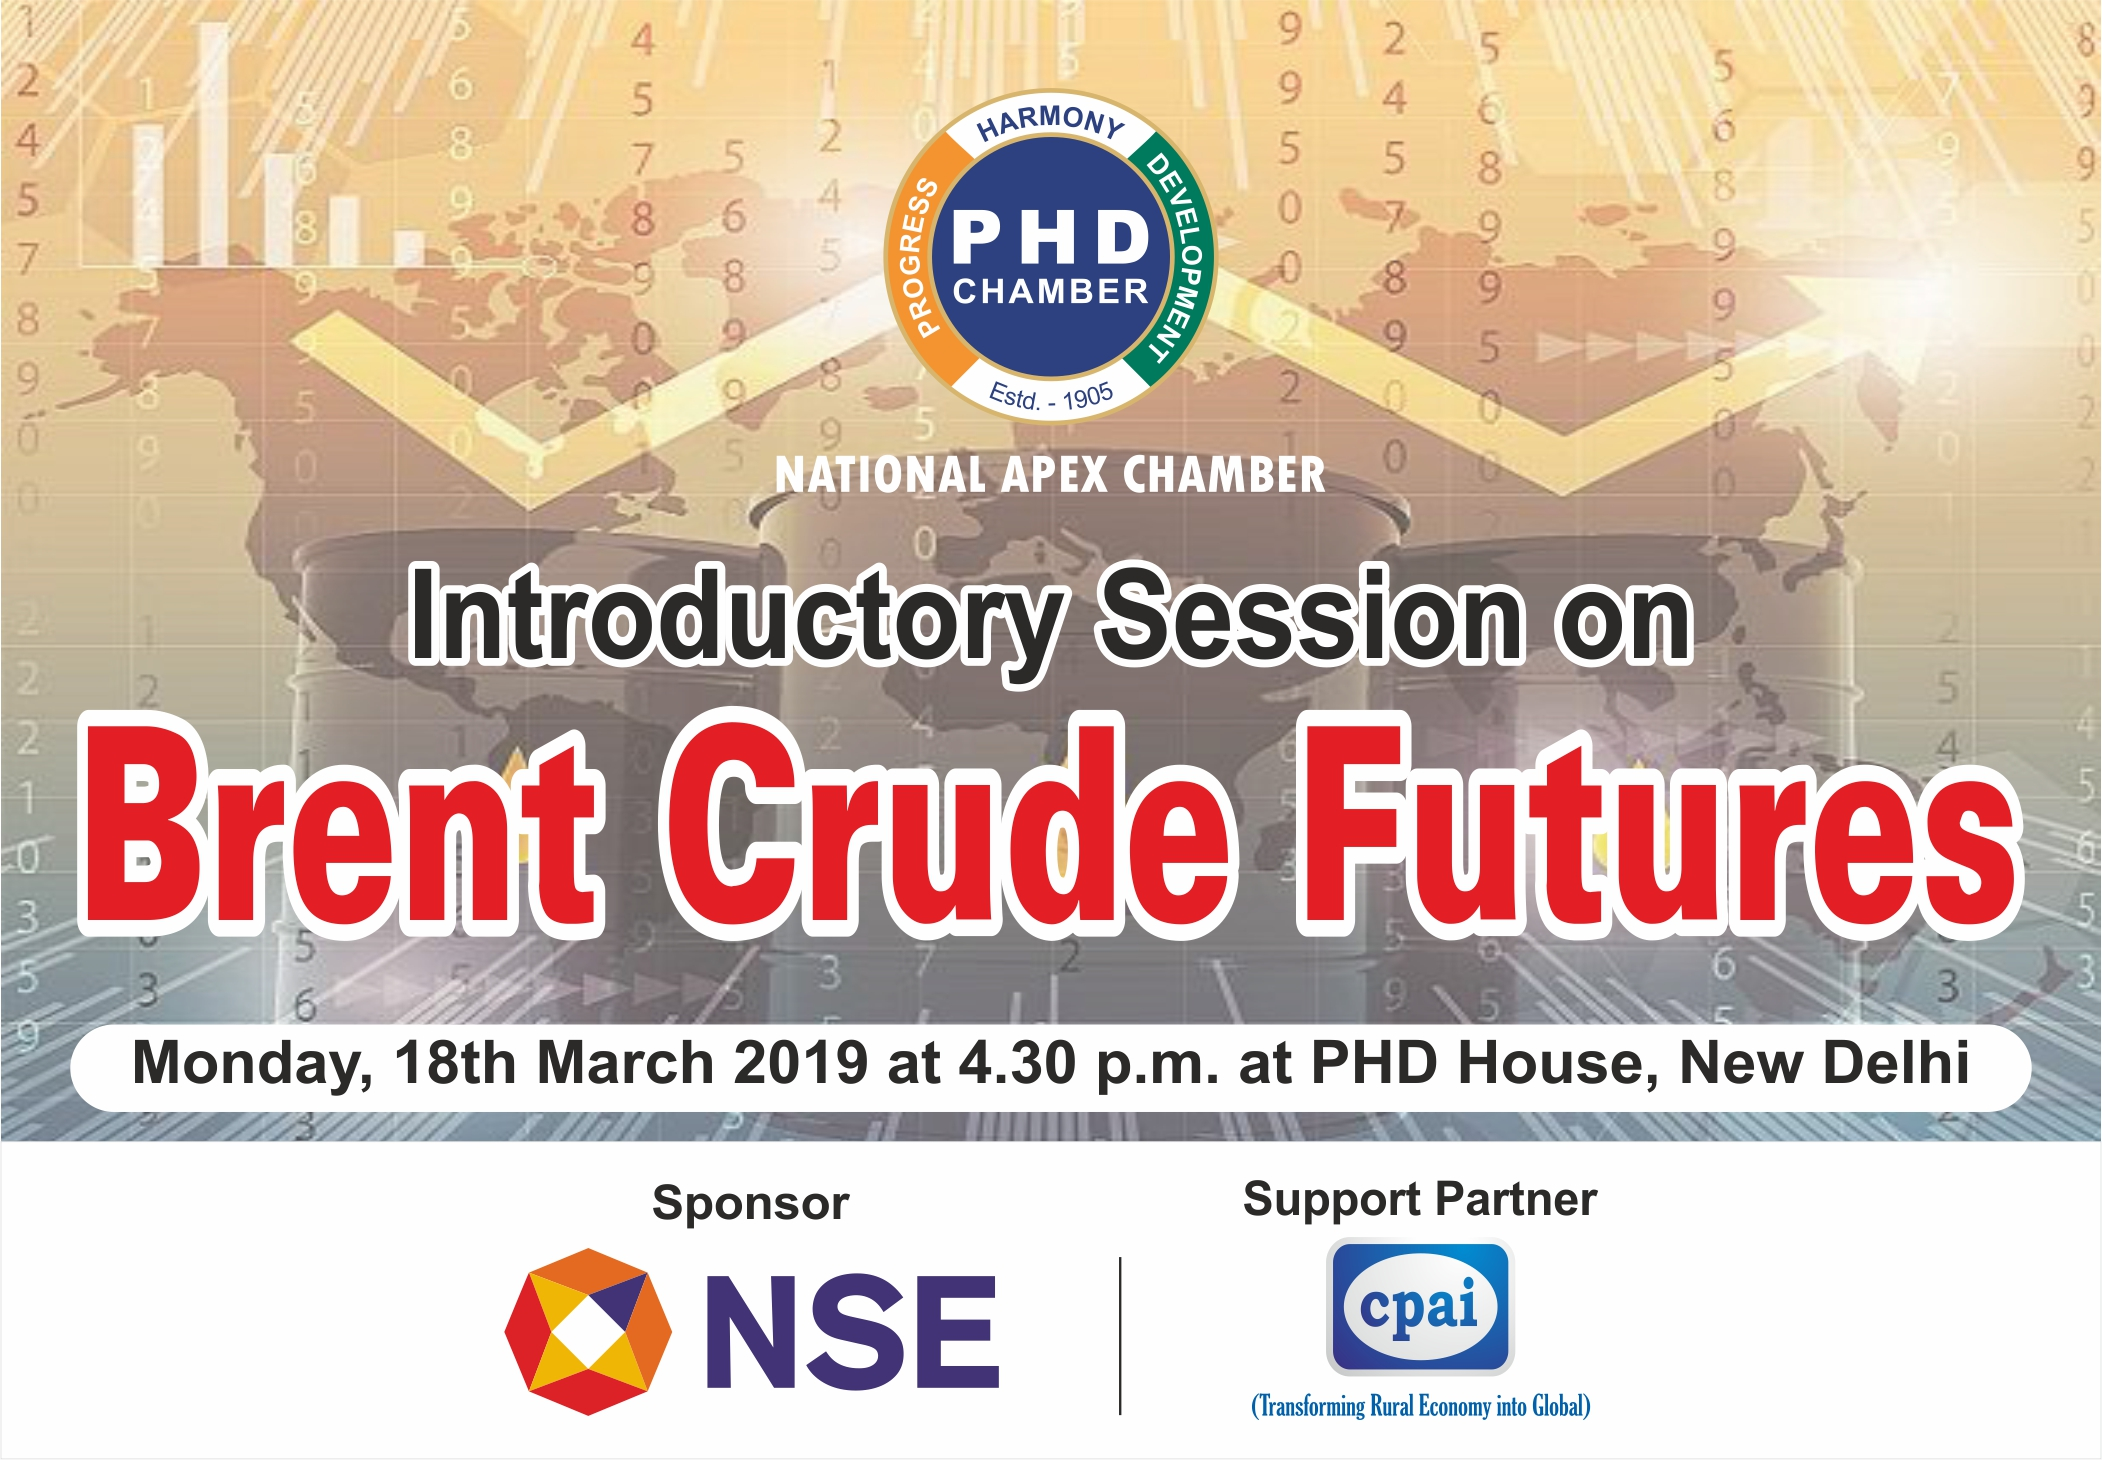 Introductory Session on Brent Crude Futures